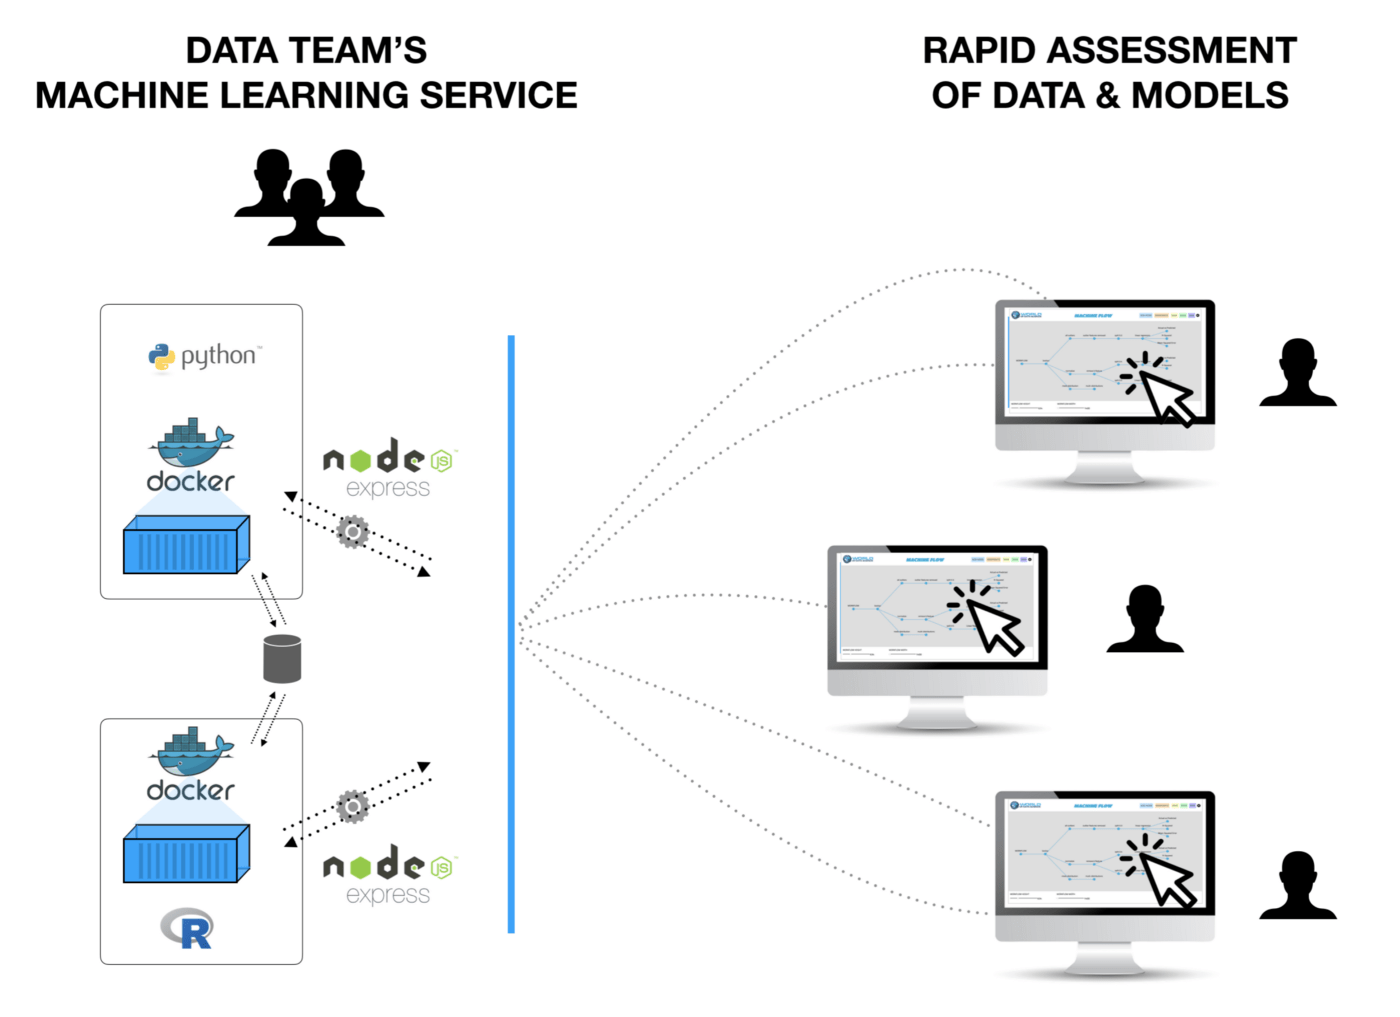 hight resolution of service mode in machine flow service mode is a containerized runtime of commonly encountered machine learning tasks allowing teams to rapidly assess new